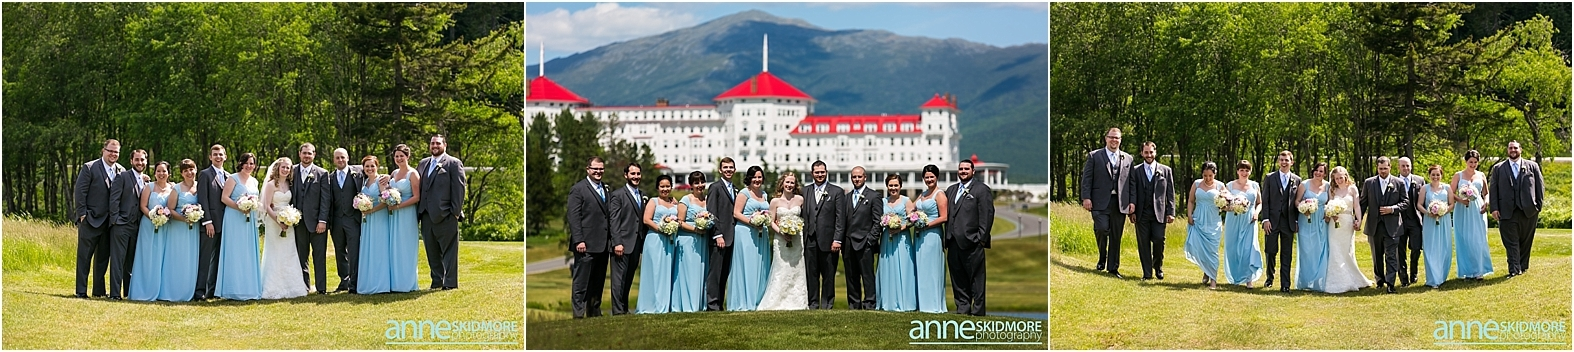 Mount_Washington_Hotel_Wedding_0026